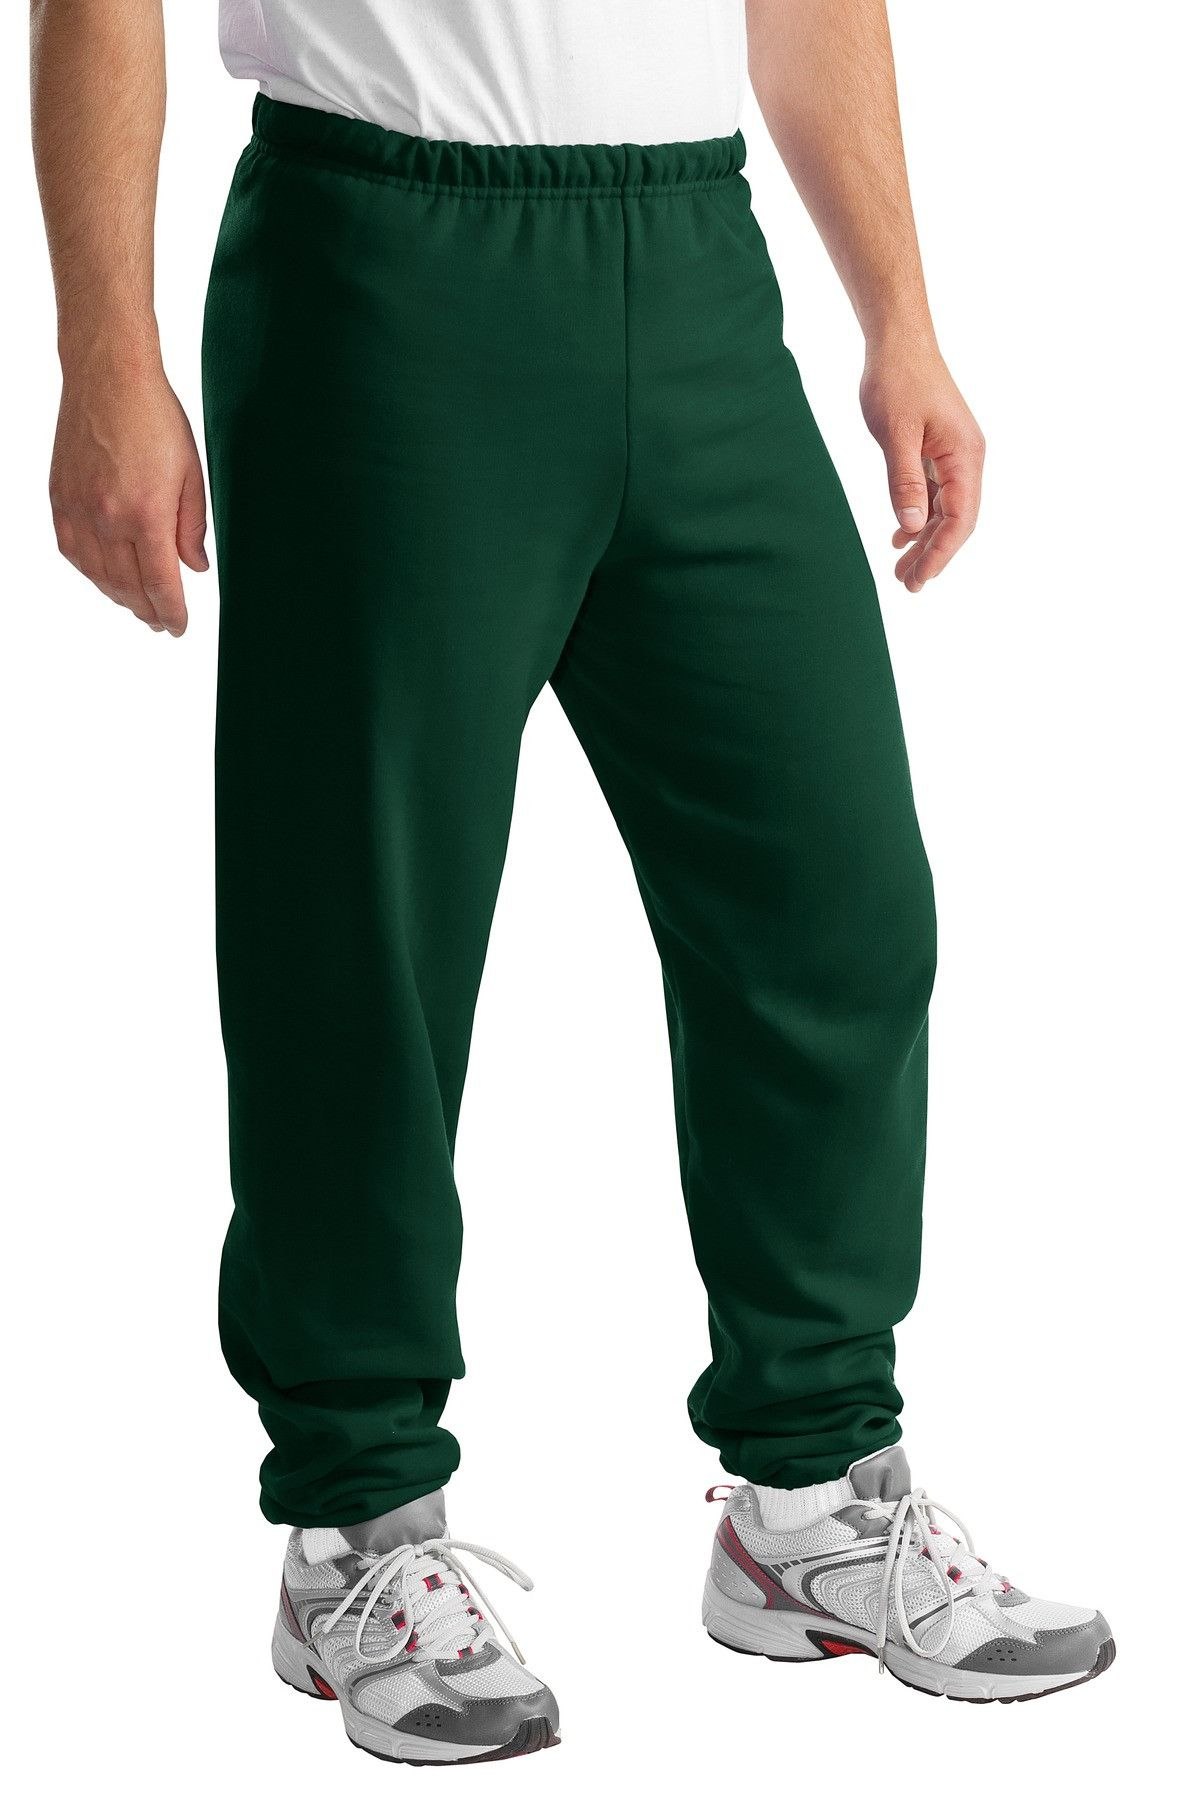 JERZEES NuBlend Sweatpant.973M Forest Green Pullover